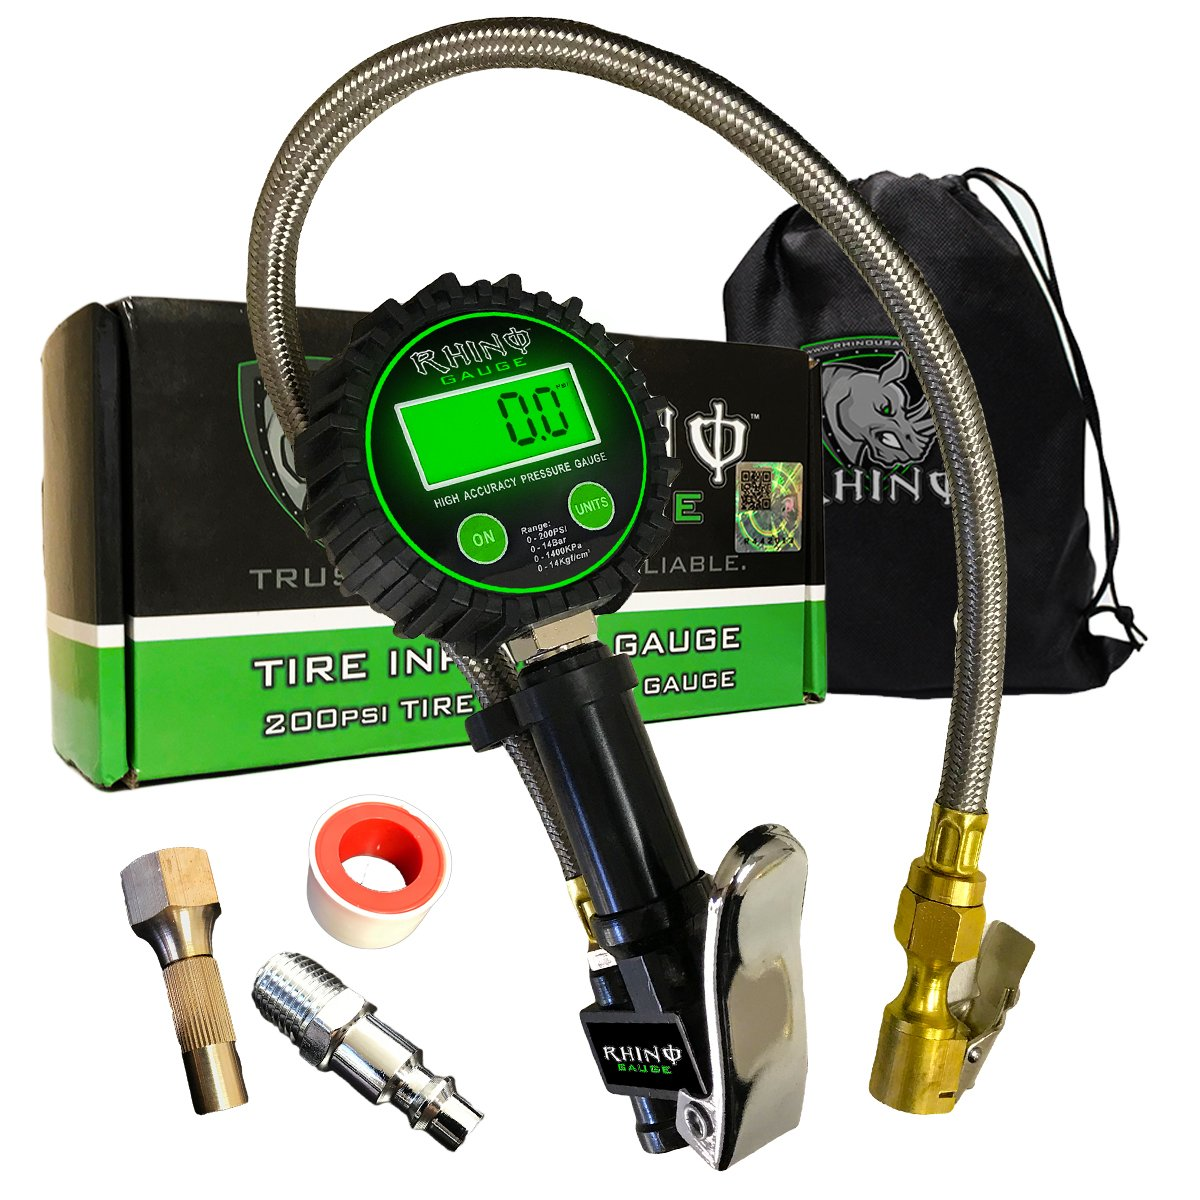 Rhino USA Heavy Duty Tire Inflator Gauge (0-200 PSI) - Certified ANSI B40.1 Accurate, Large 2'' Easy Read Glow Dial, Premium Braided Hose, Solid Brass Hardware, Best For Any Car, Truck, Motorcycle, RV